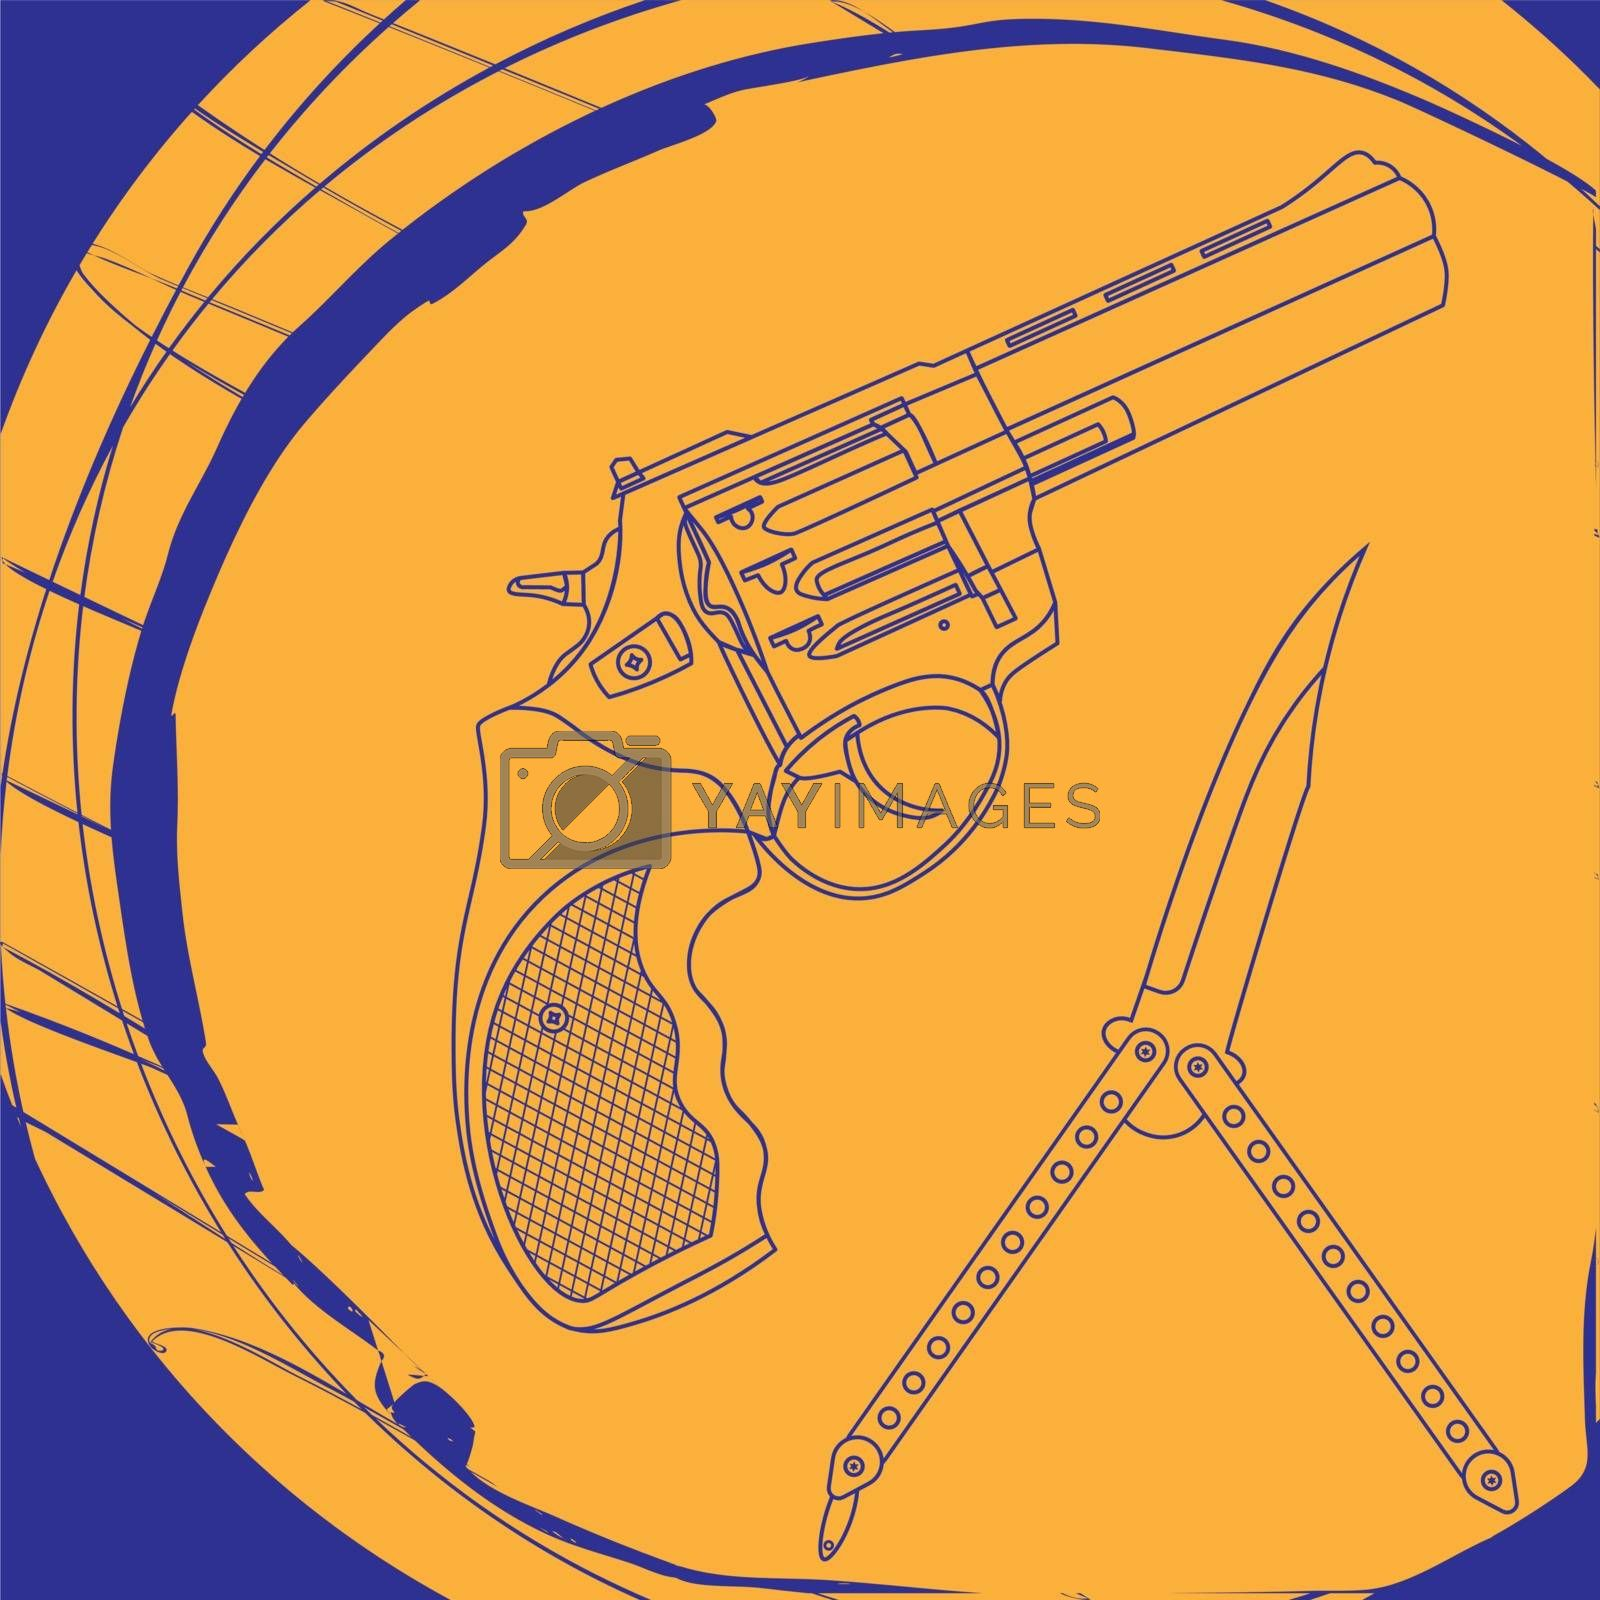 Contour illustration with revolver and butterfly knife on bright blue and orange background